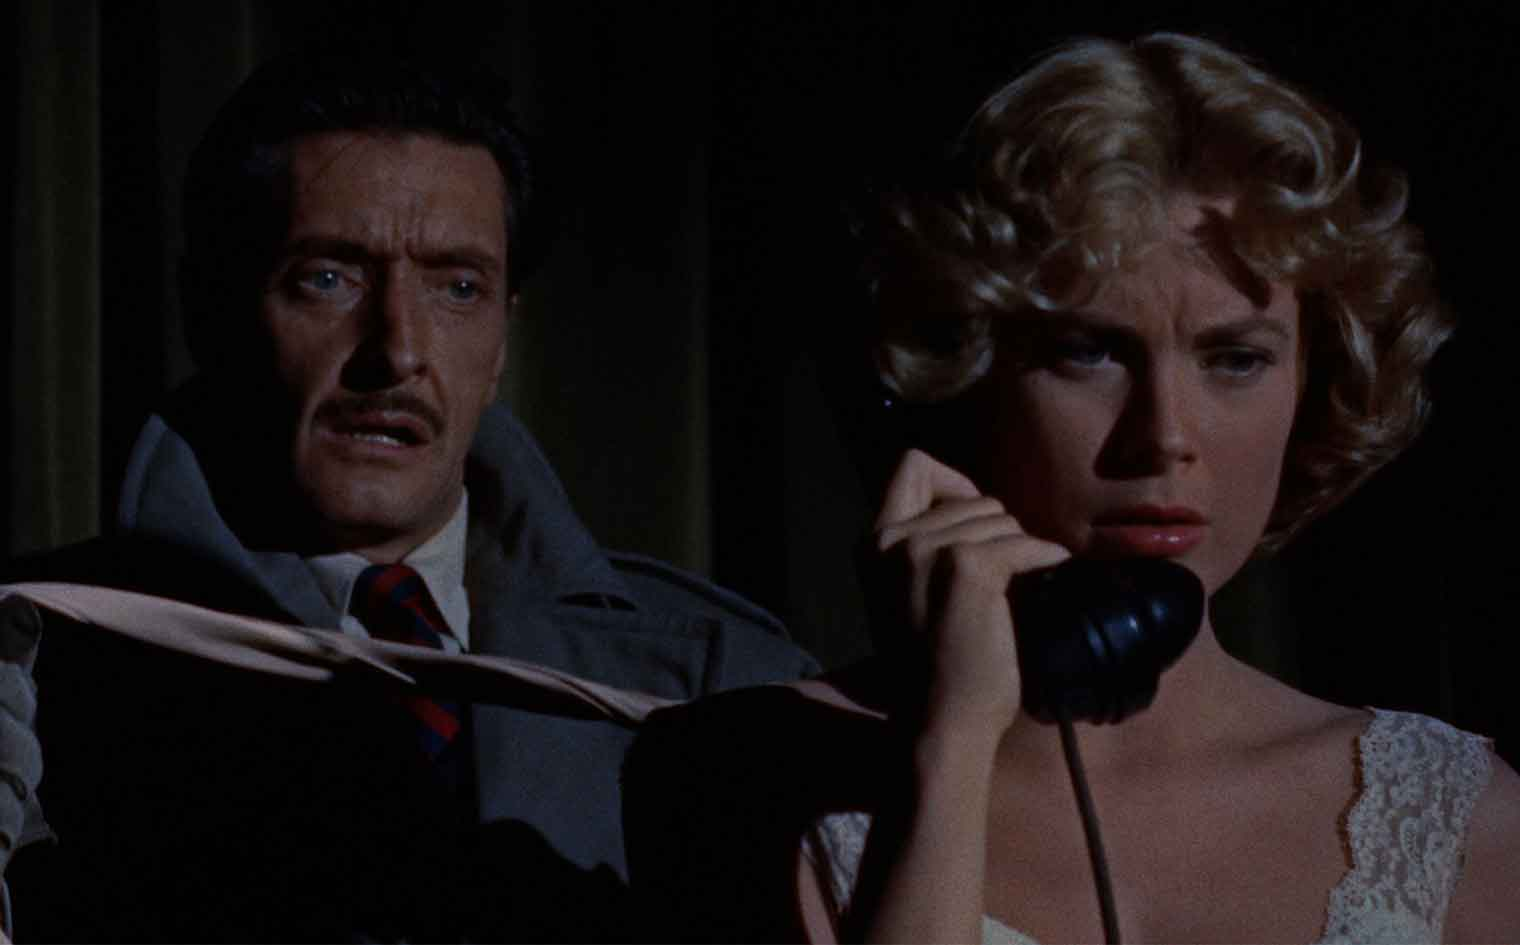 DIAL M FOR MURDER IN 3-D & HOUSE OF WAX IN 3-D